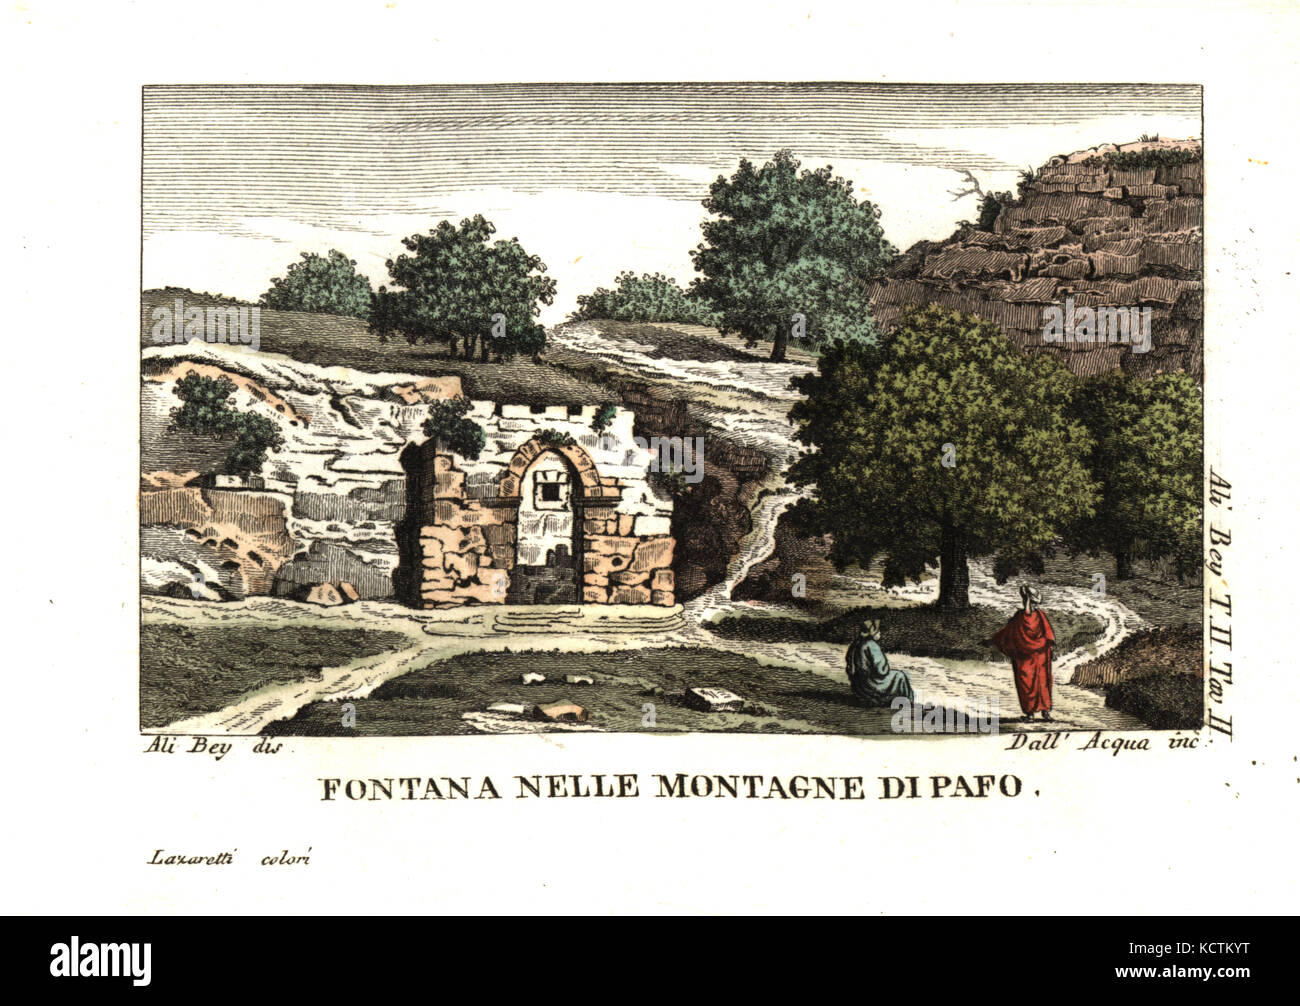 A fountain among the mountains of Paphos, Cyprus. Illustration by Ali Bey el Abbassi from his Travels in Morocco, - Stock Image